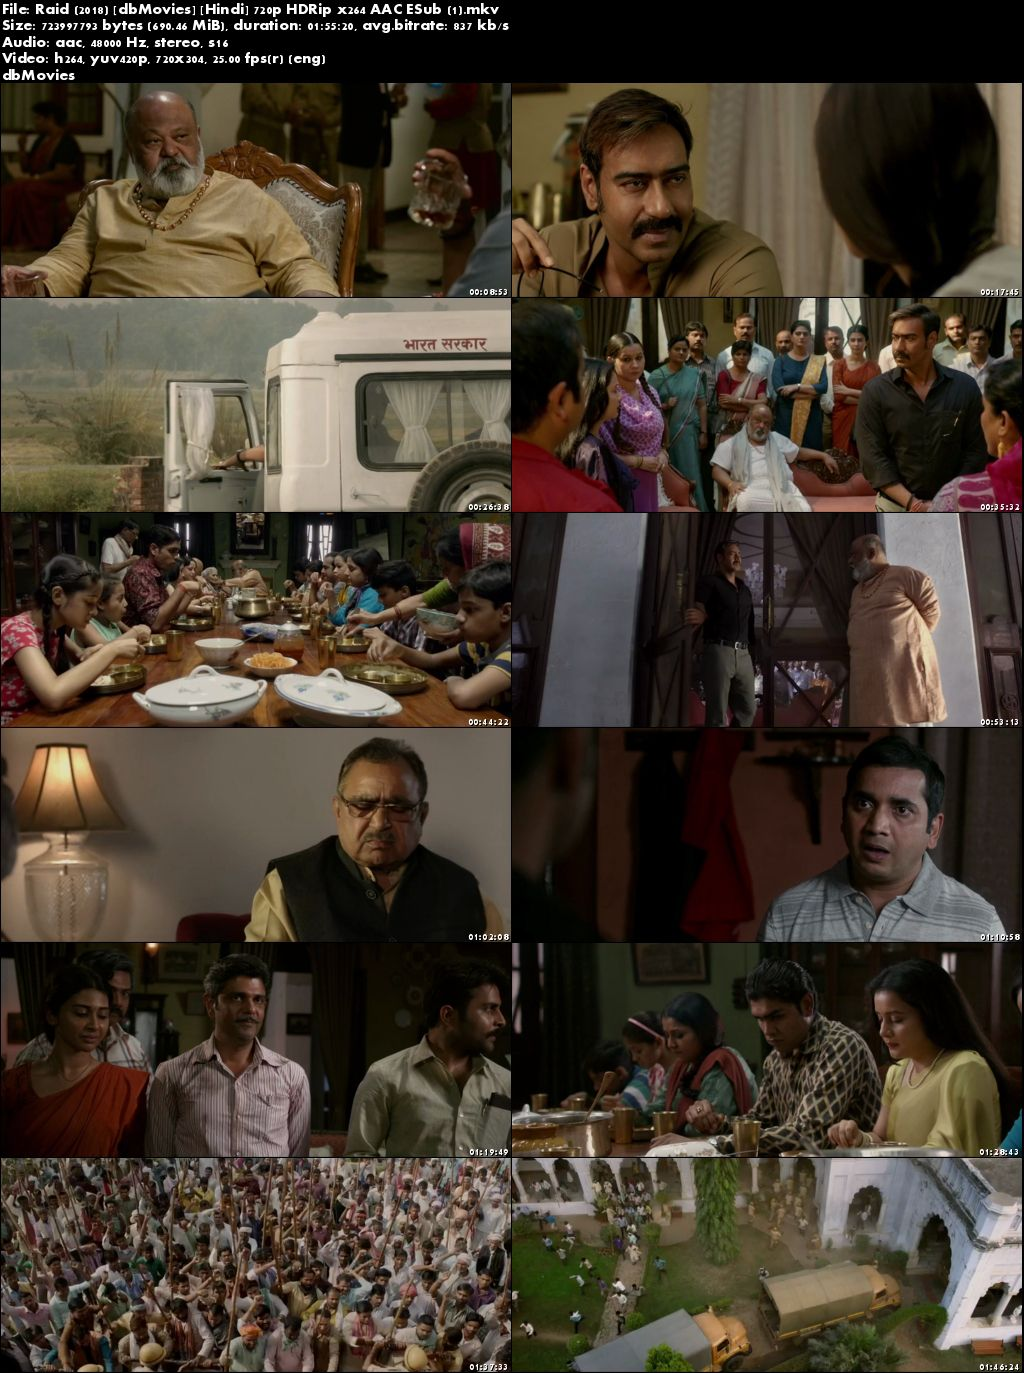 bollywood hd movie 720p download free site